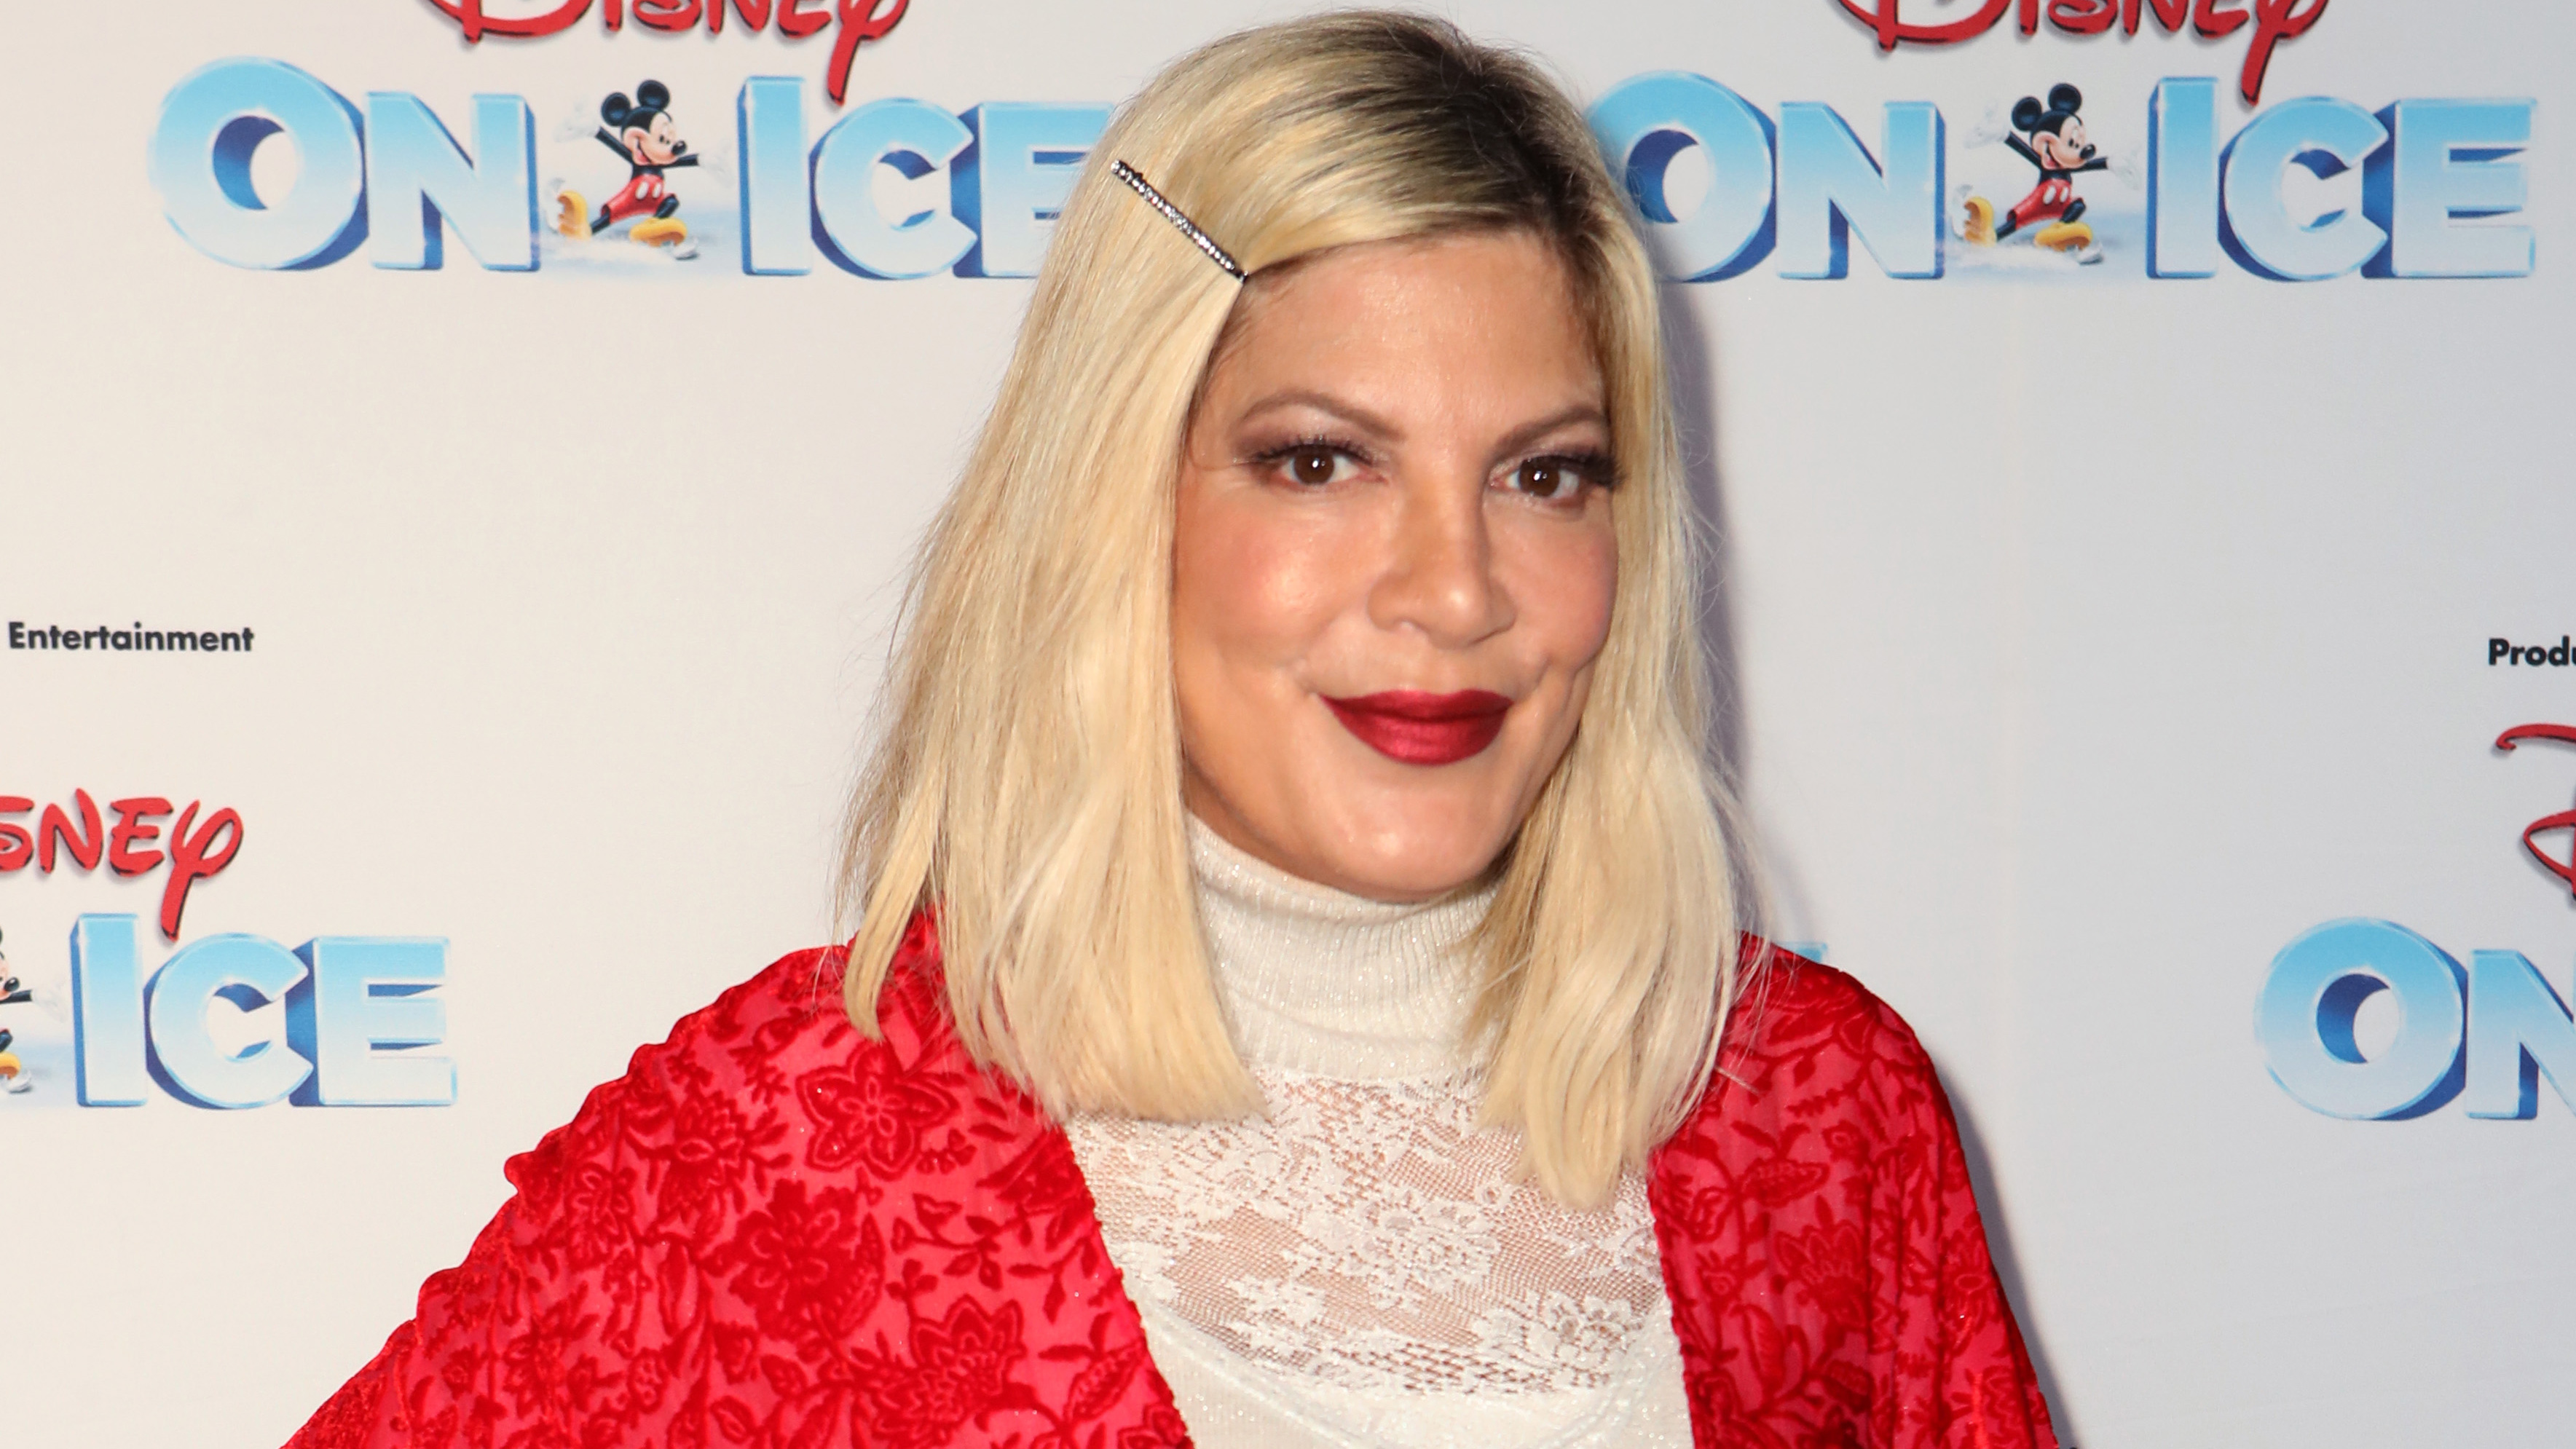 Tori Spelling issues apology after posting a photo of her daughter that was deemed racially inappropriate - Fox News